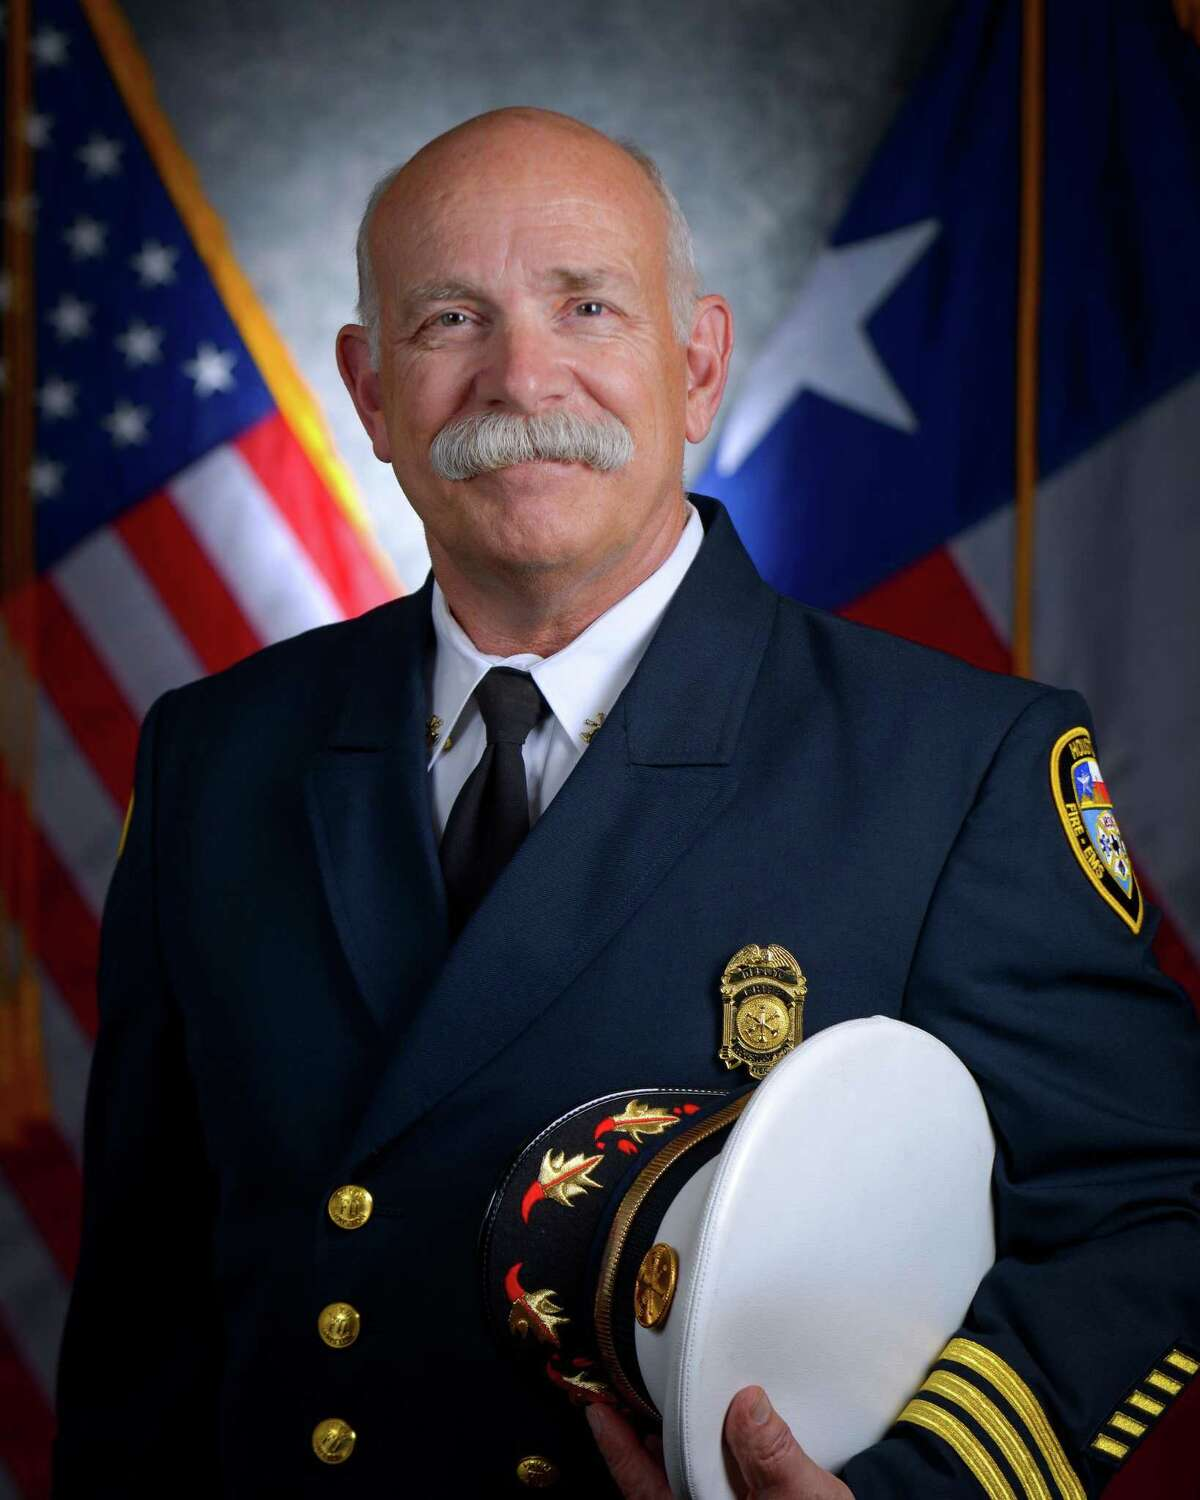 Fire Chief George McAteer takes over Harris County Emergency Services District No. 48 on Tuesday, June 1.